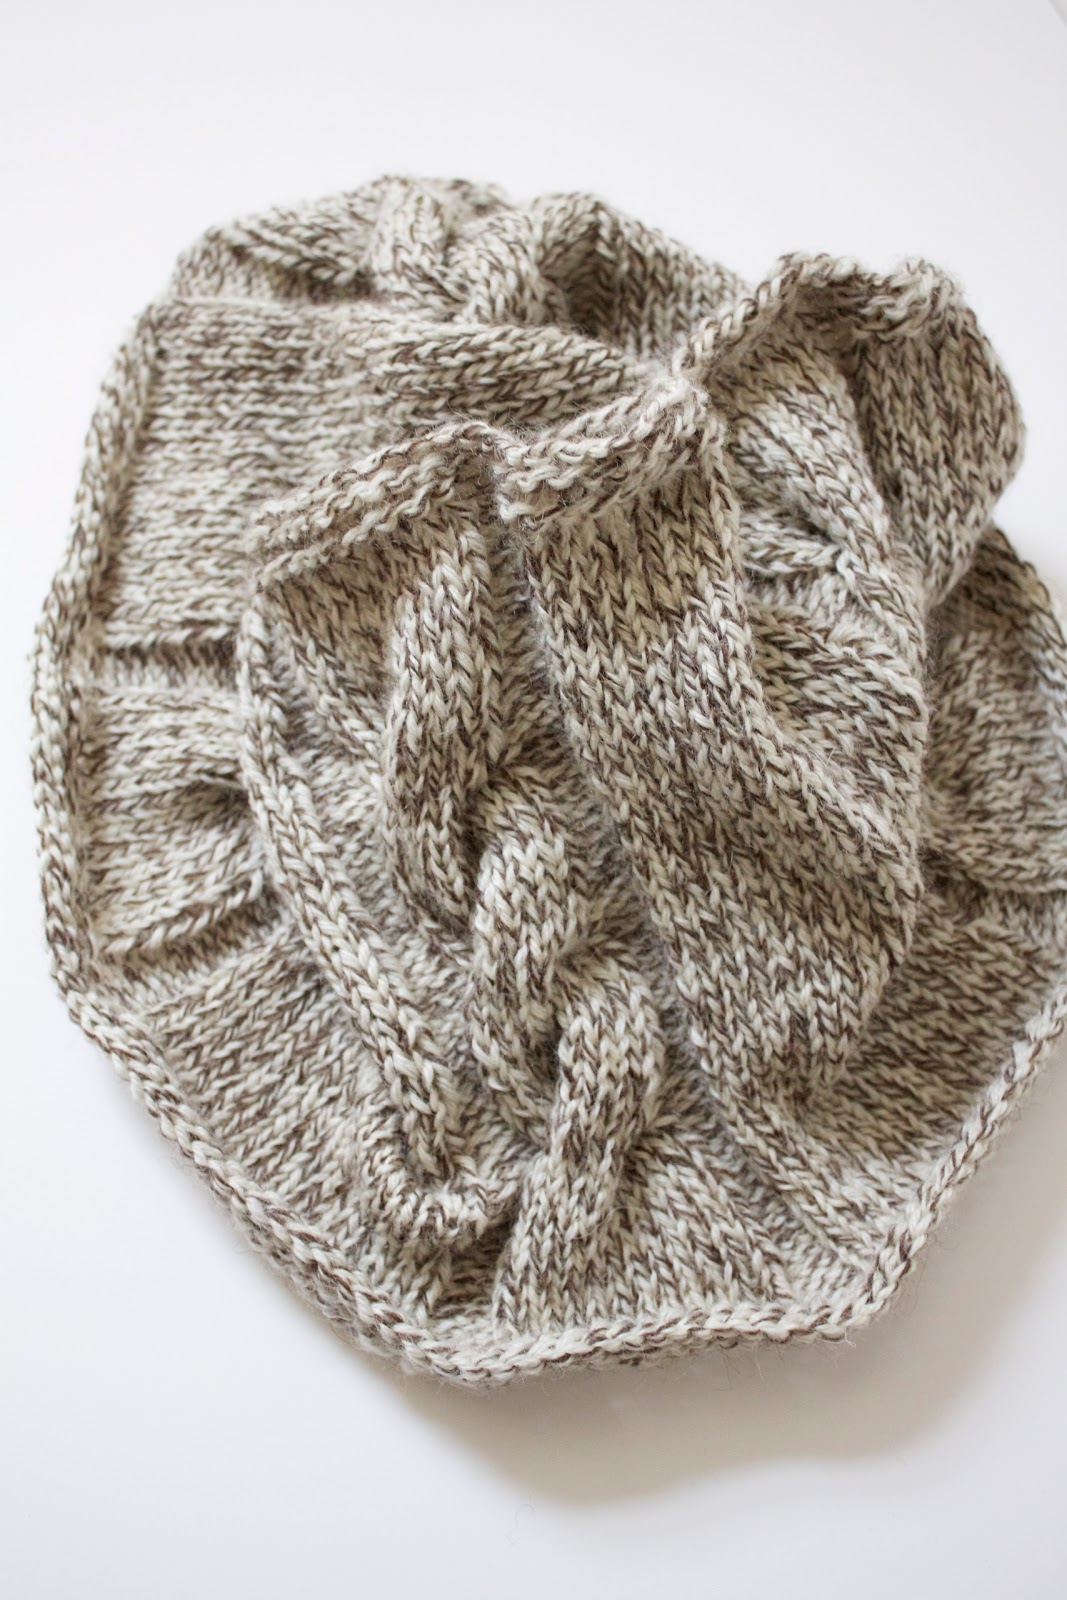 Cabled Cowl Knitting Pattern : Handmade by Meg K: Cabled Cowl [Knitting Pattern]